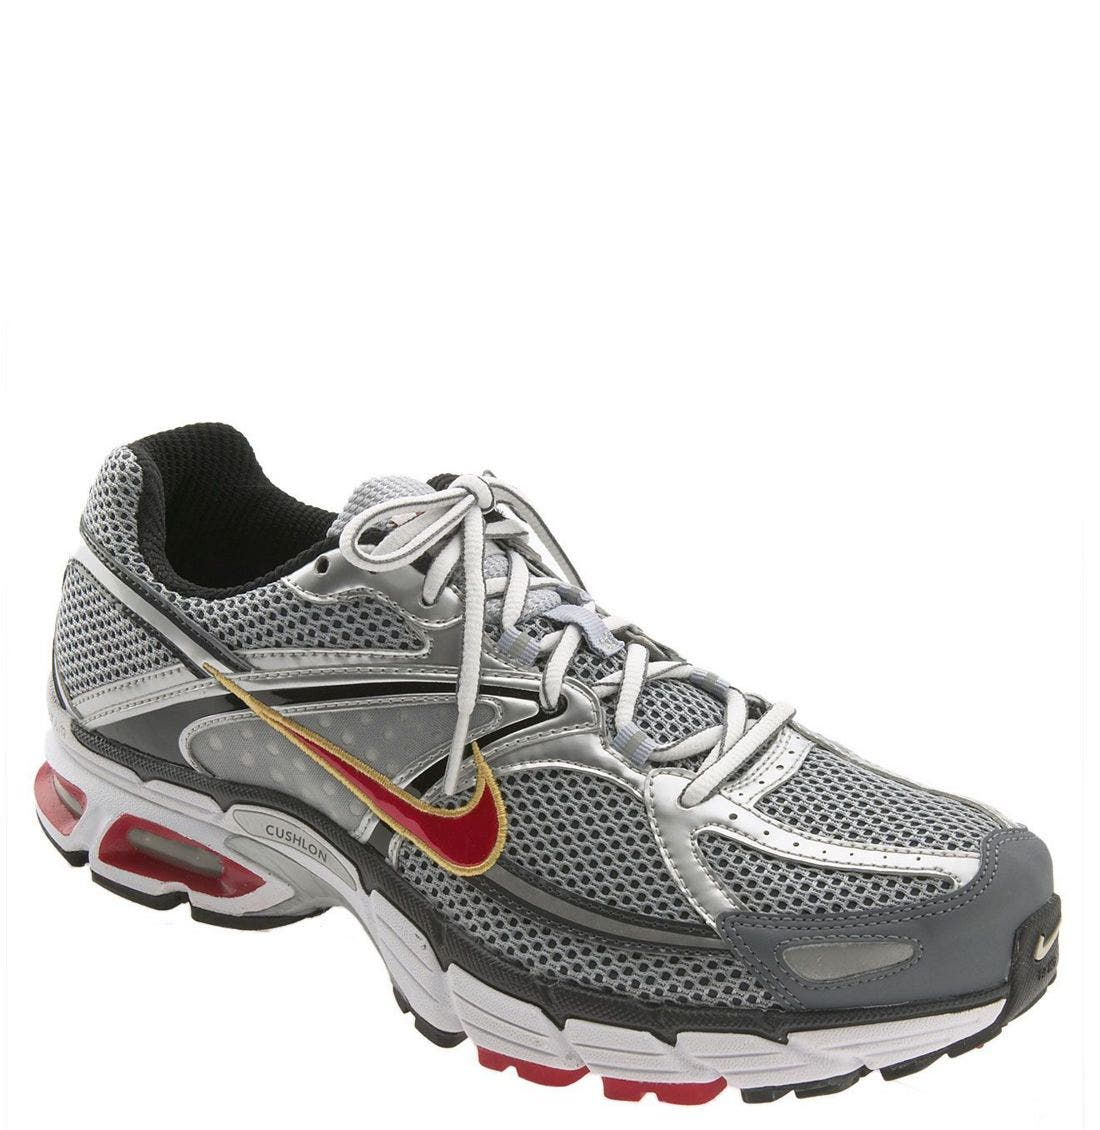 meet 4a1ca 8b2d4 spain cheap nike air shox a8682 c9cf5  coupon code for nike air max moto 6  womens running shoes bc1c4 efbfc